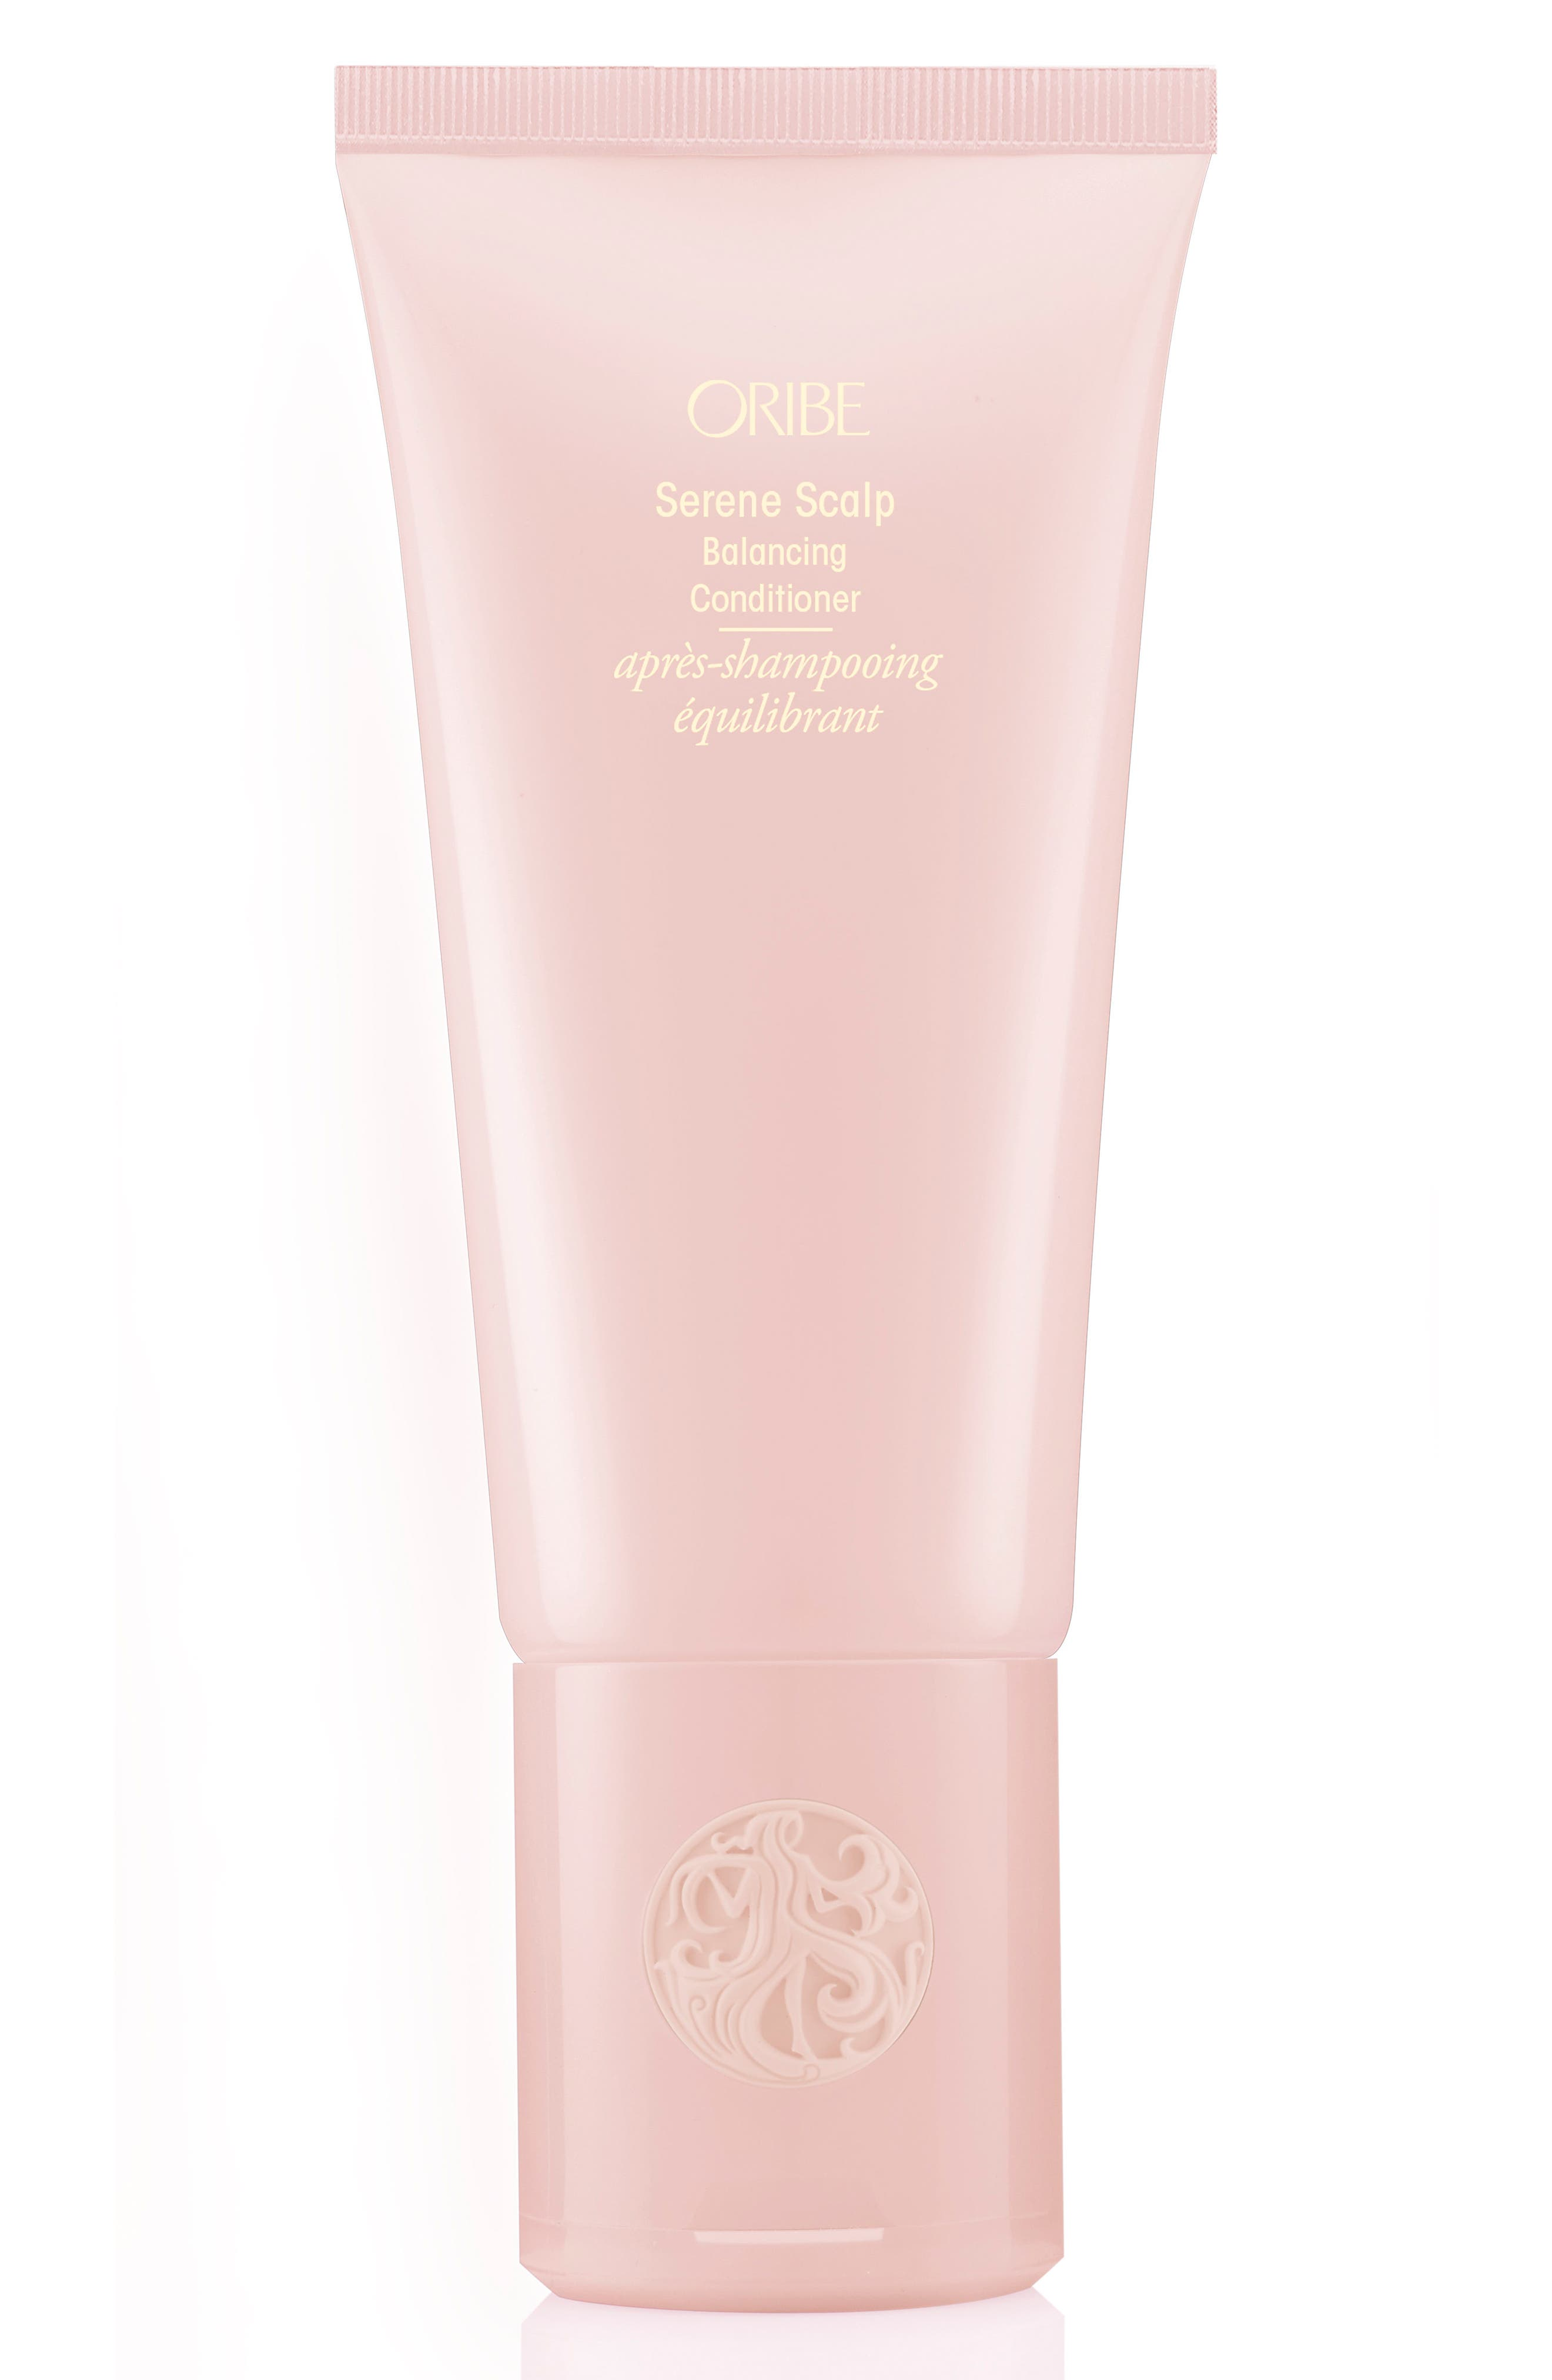 Main Image - SPACE.NK.apothecary Oribe Serene Scalp Balancing Conditioner